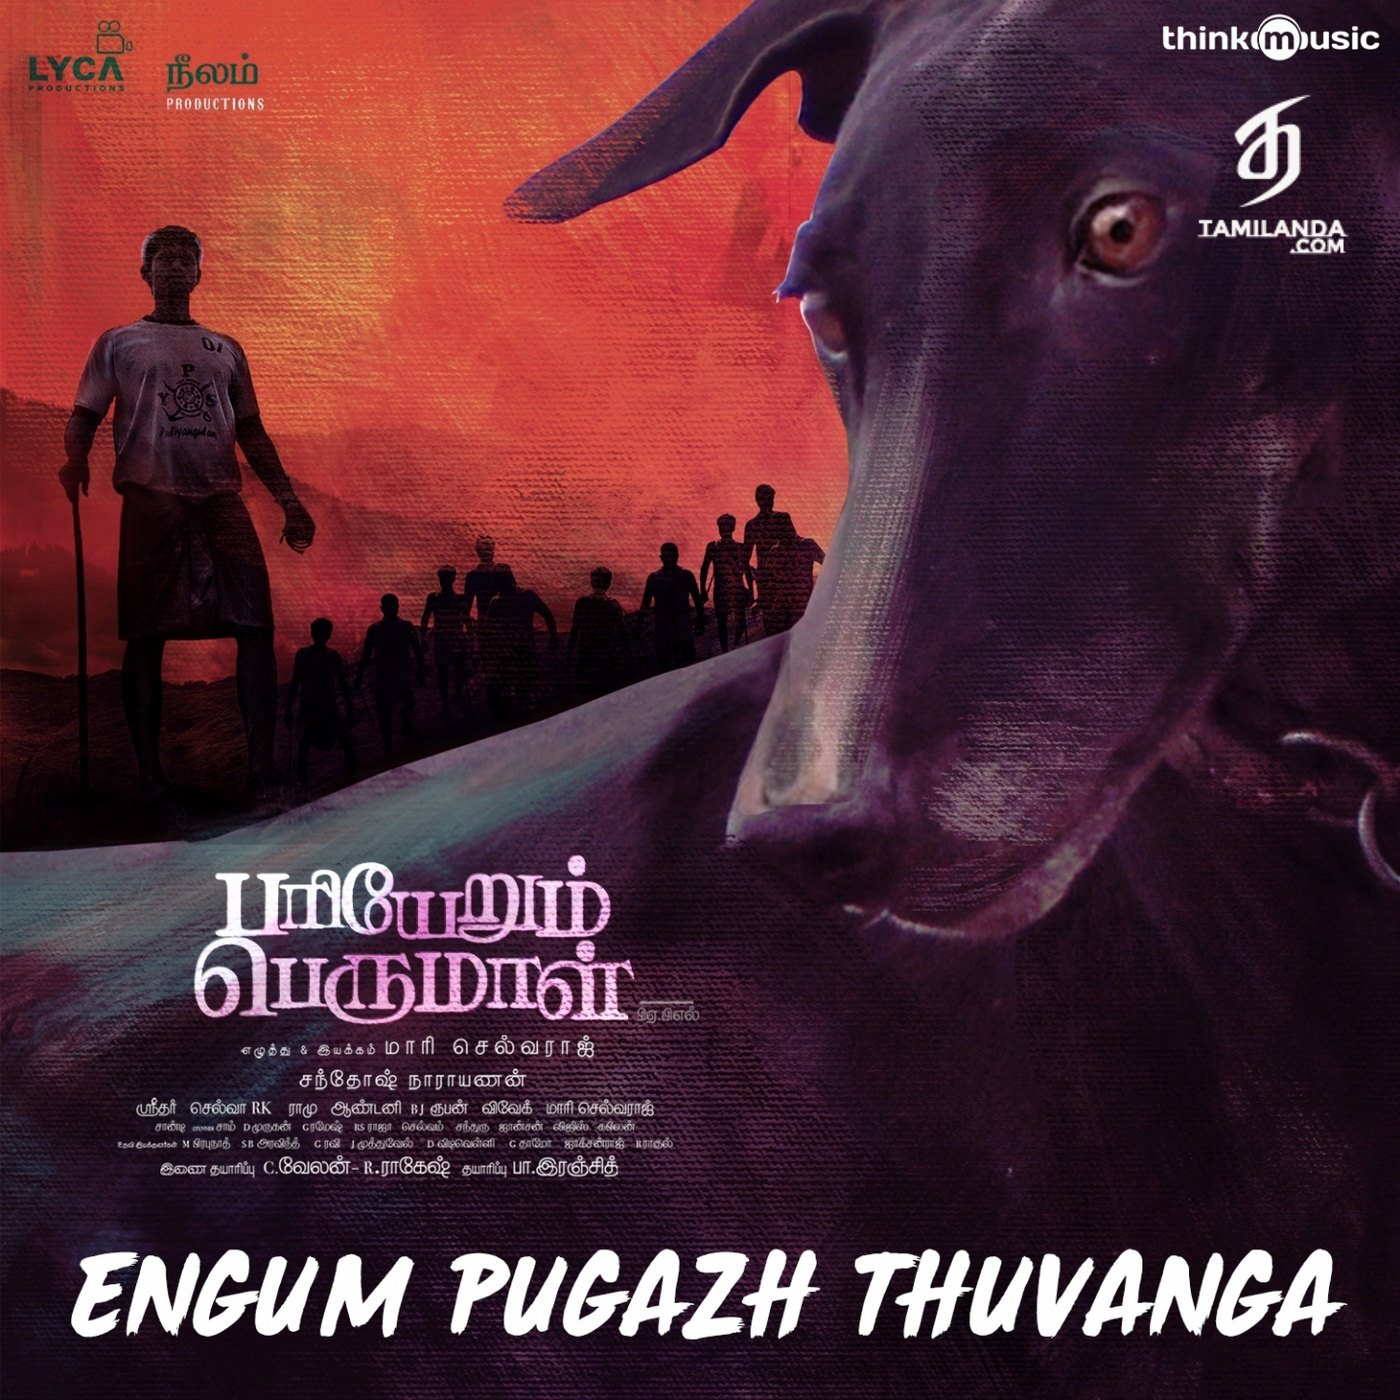 Engum Pugazh Thuvanga (From Pariyerum Perumal) FLAC Songs